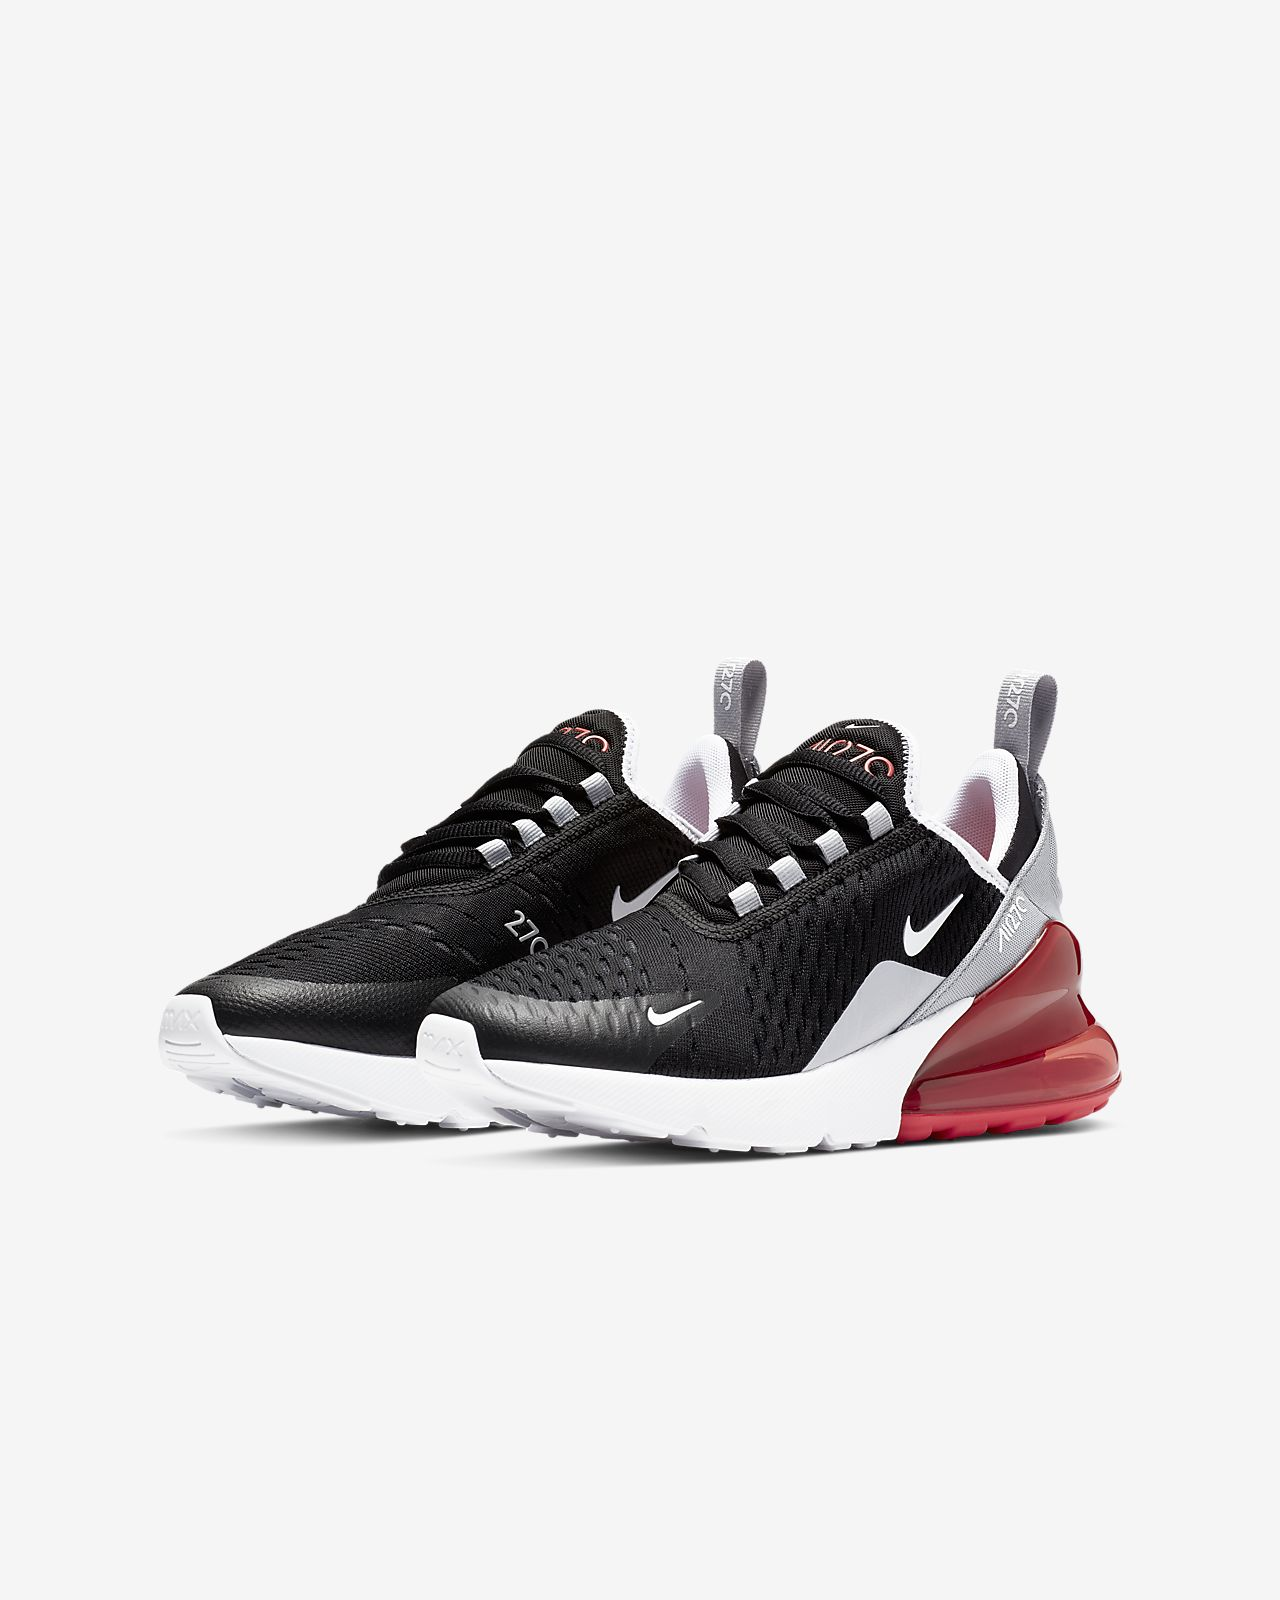 check out 4d9e3 8ddc7 ... Sko Nike Air Max 270 för ungdom